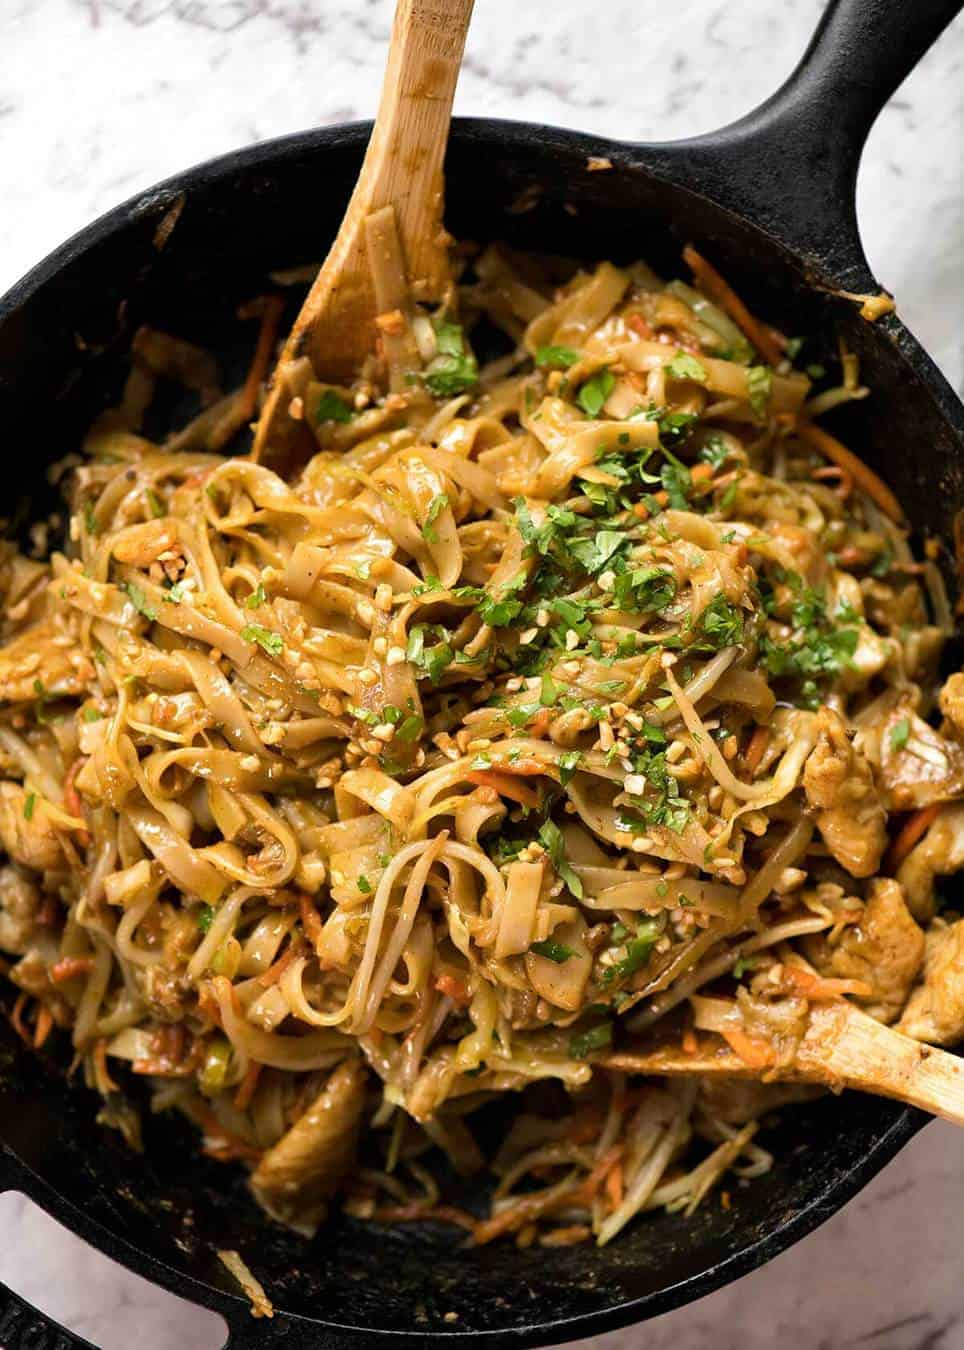 Stir Fried Noodles with Peanut Sauce